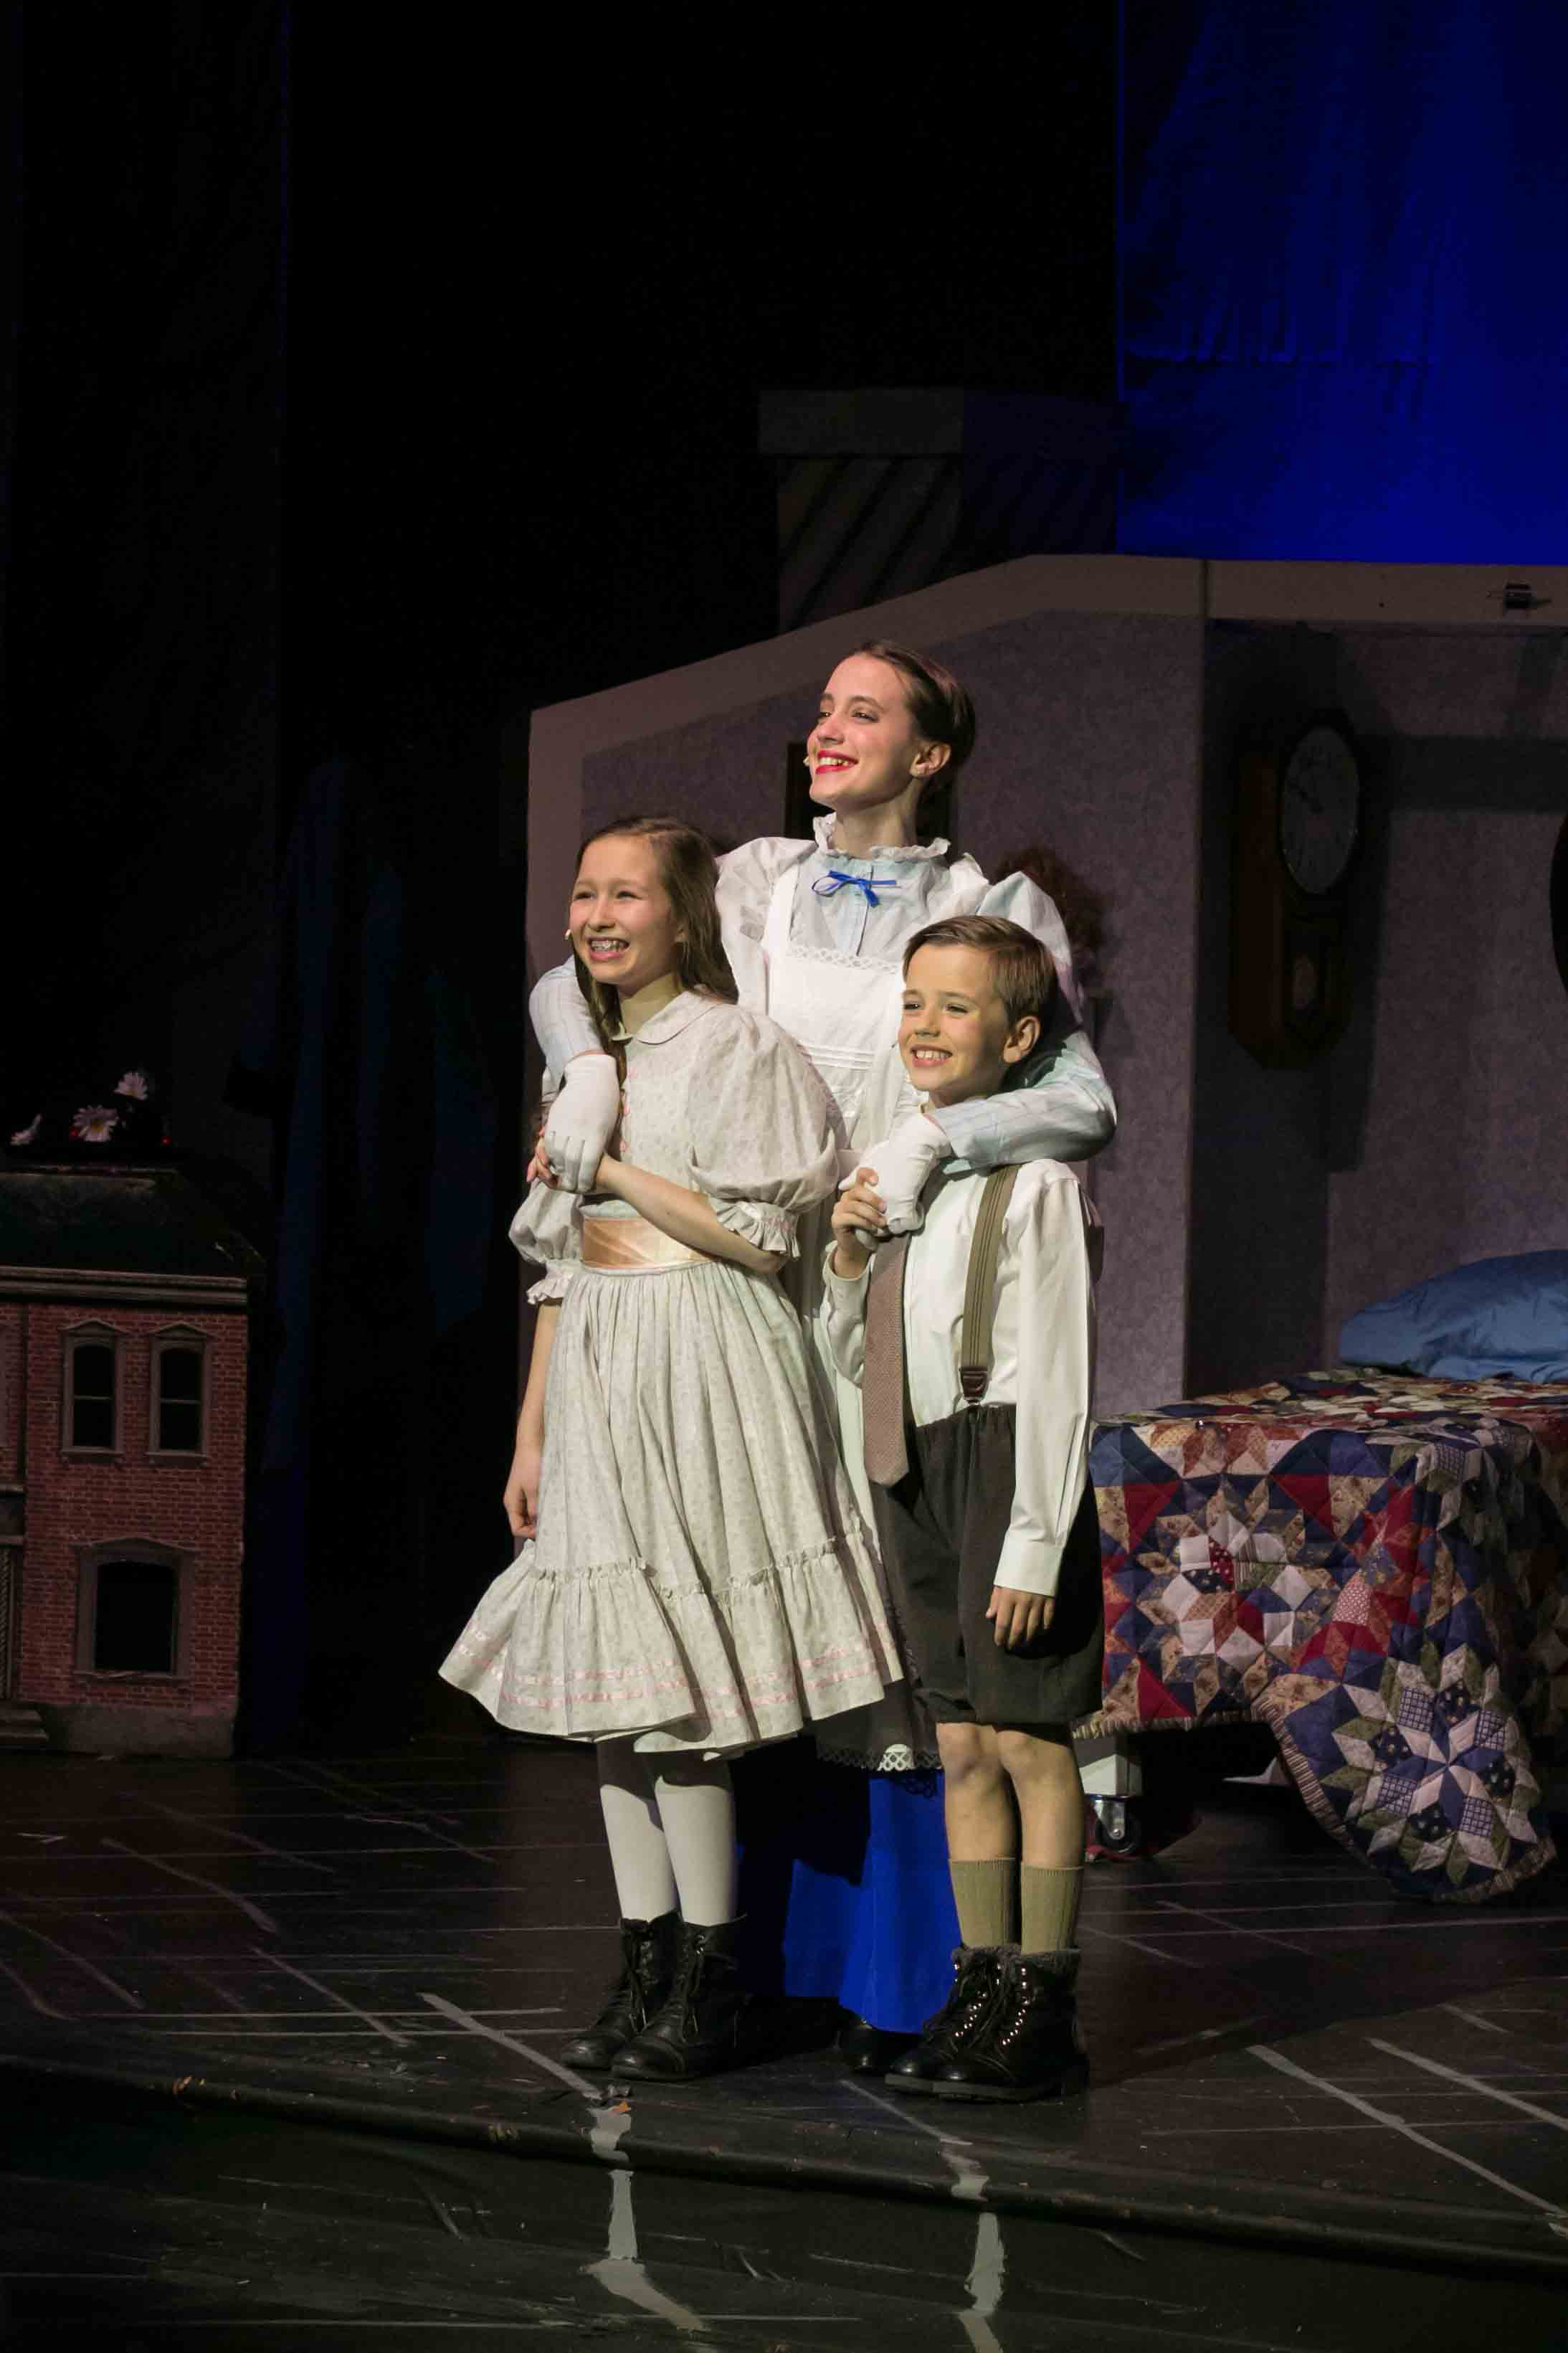 2-4-16 Mary Poppins Proper Cast 0094.jpg